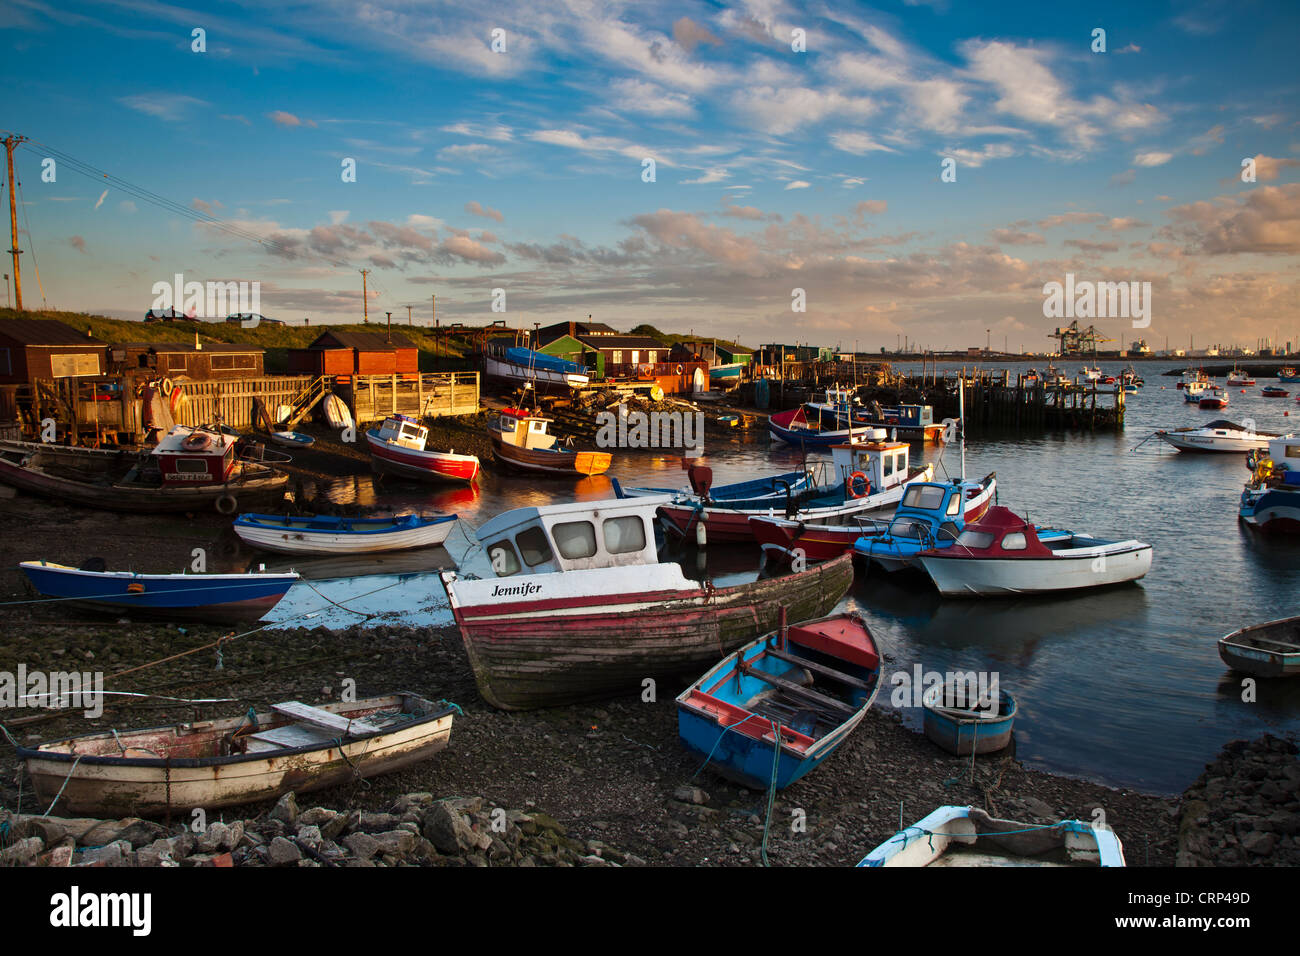 Paddys Hole, a safe mooring place for small fishing craft on the Tees Estuary. - Stock Image